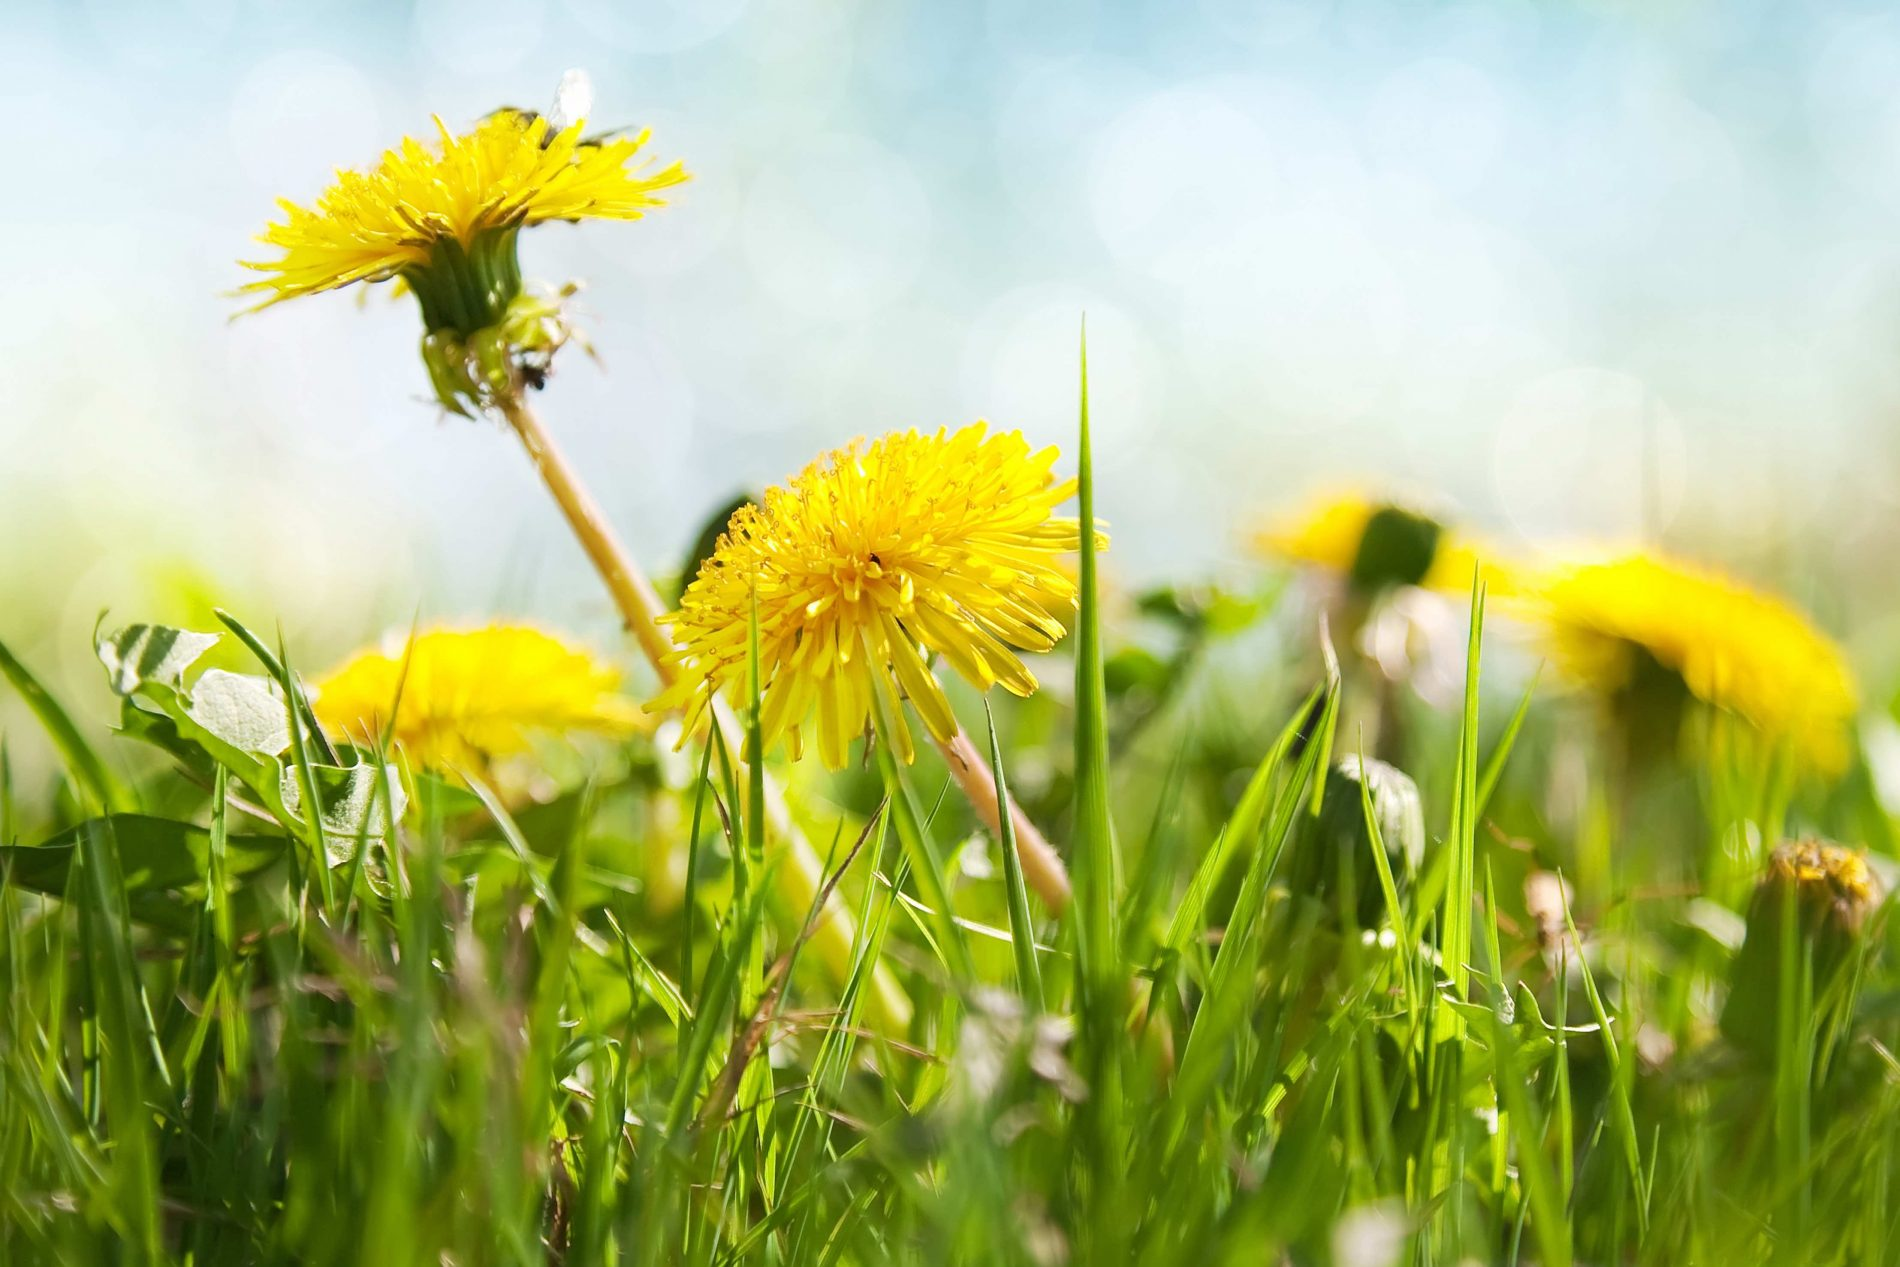 Dandelions fight cancer